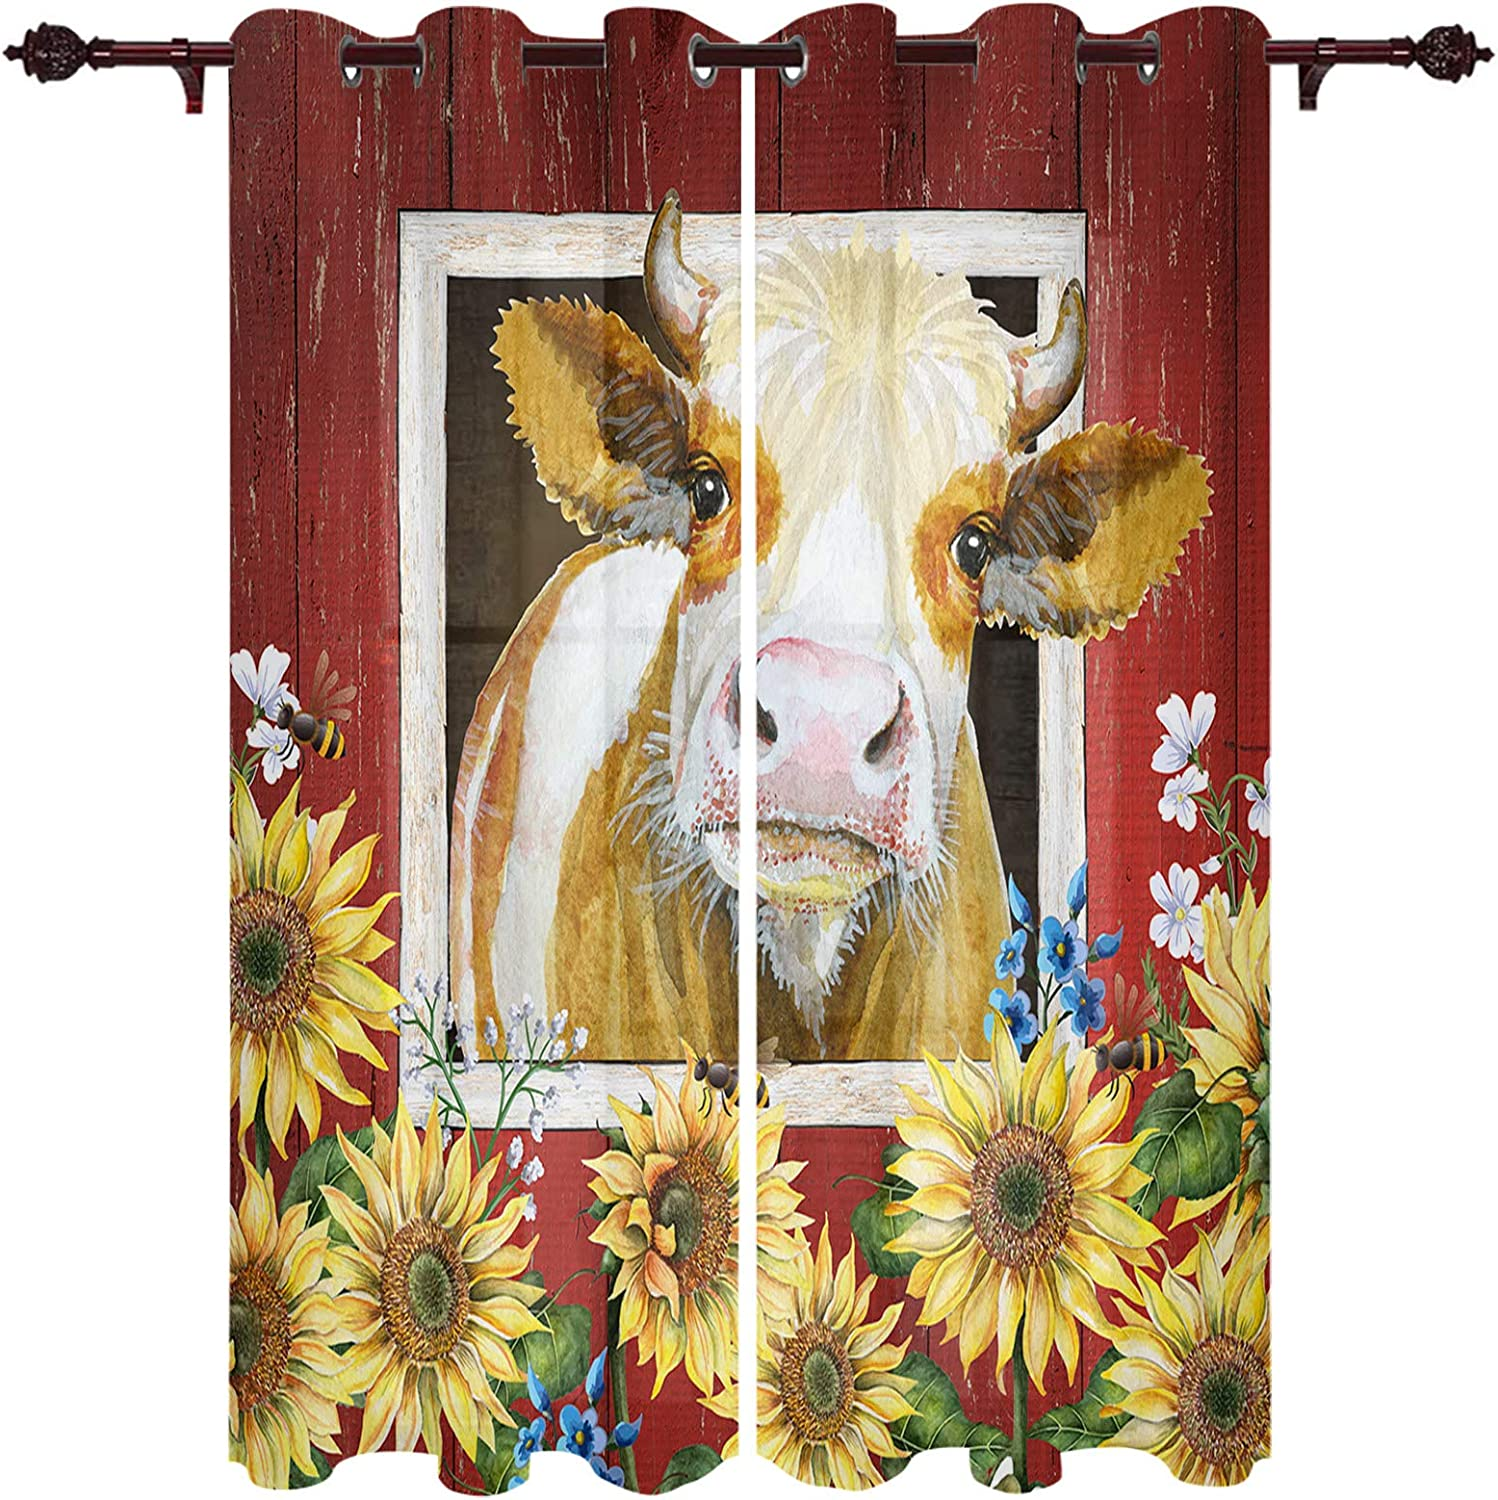 Funny Farmhouse Milk Cow and Curtain 70% OFF Outlet Sunflower Window Treatment Ranking TOP13